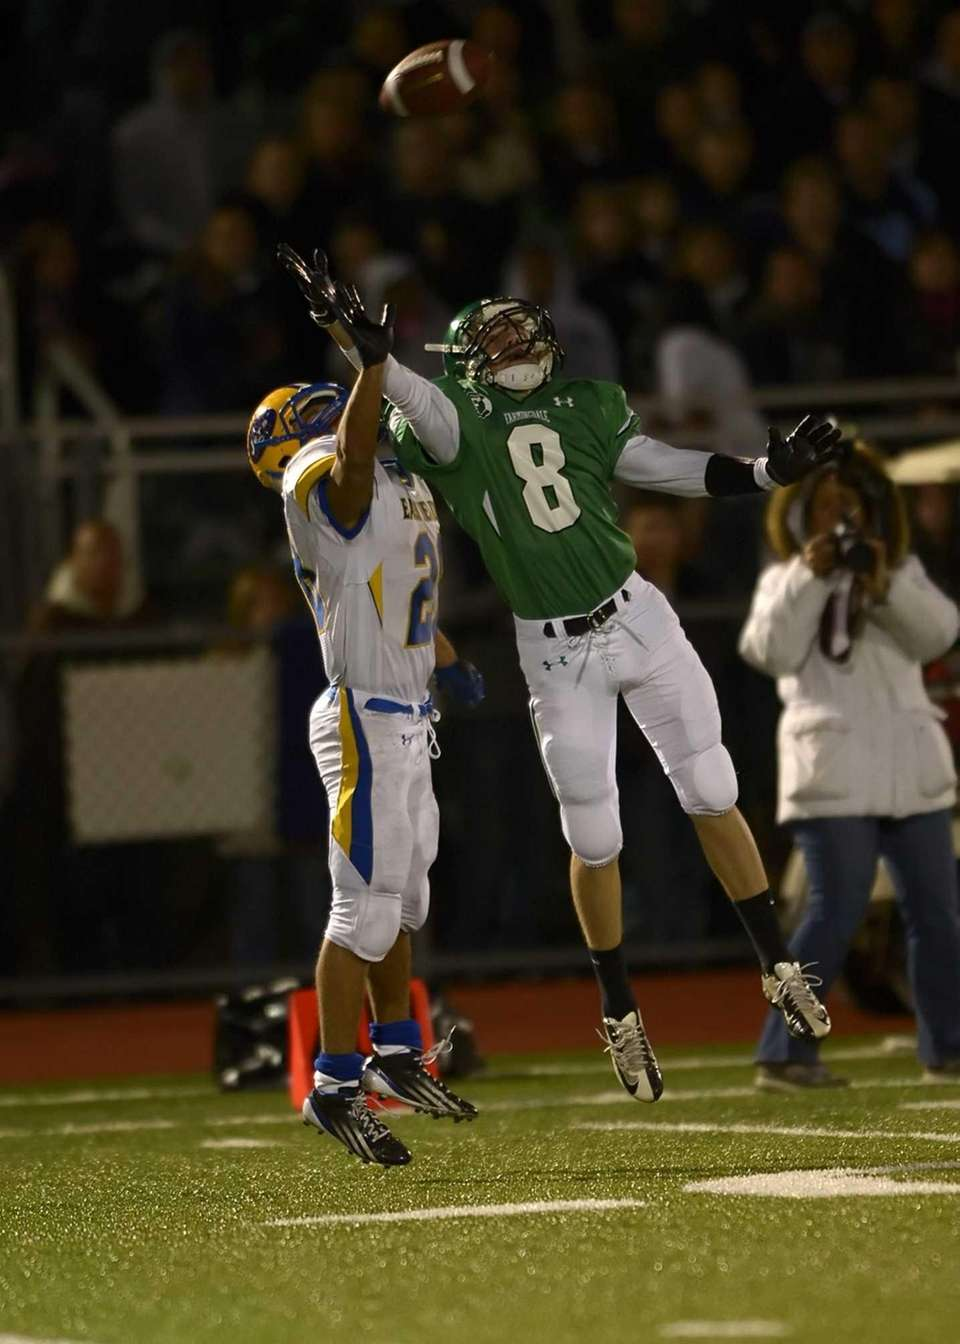 Farmingdale's Tom Kennedy goes up for the pass